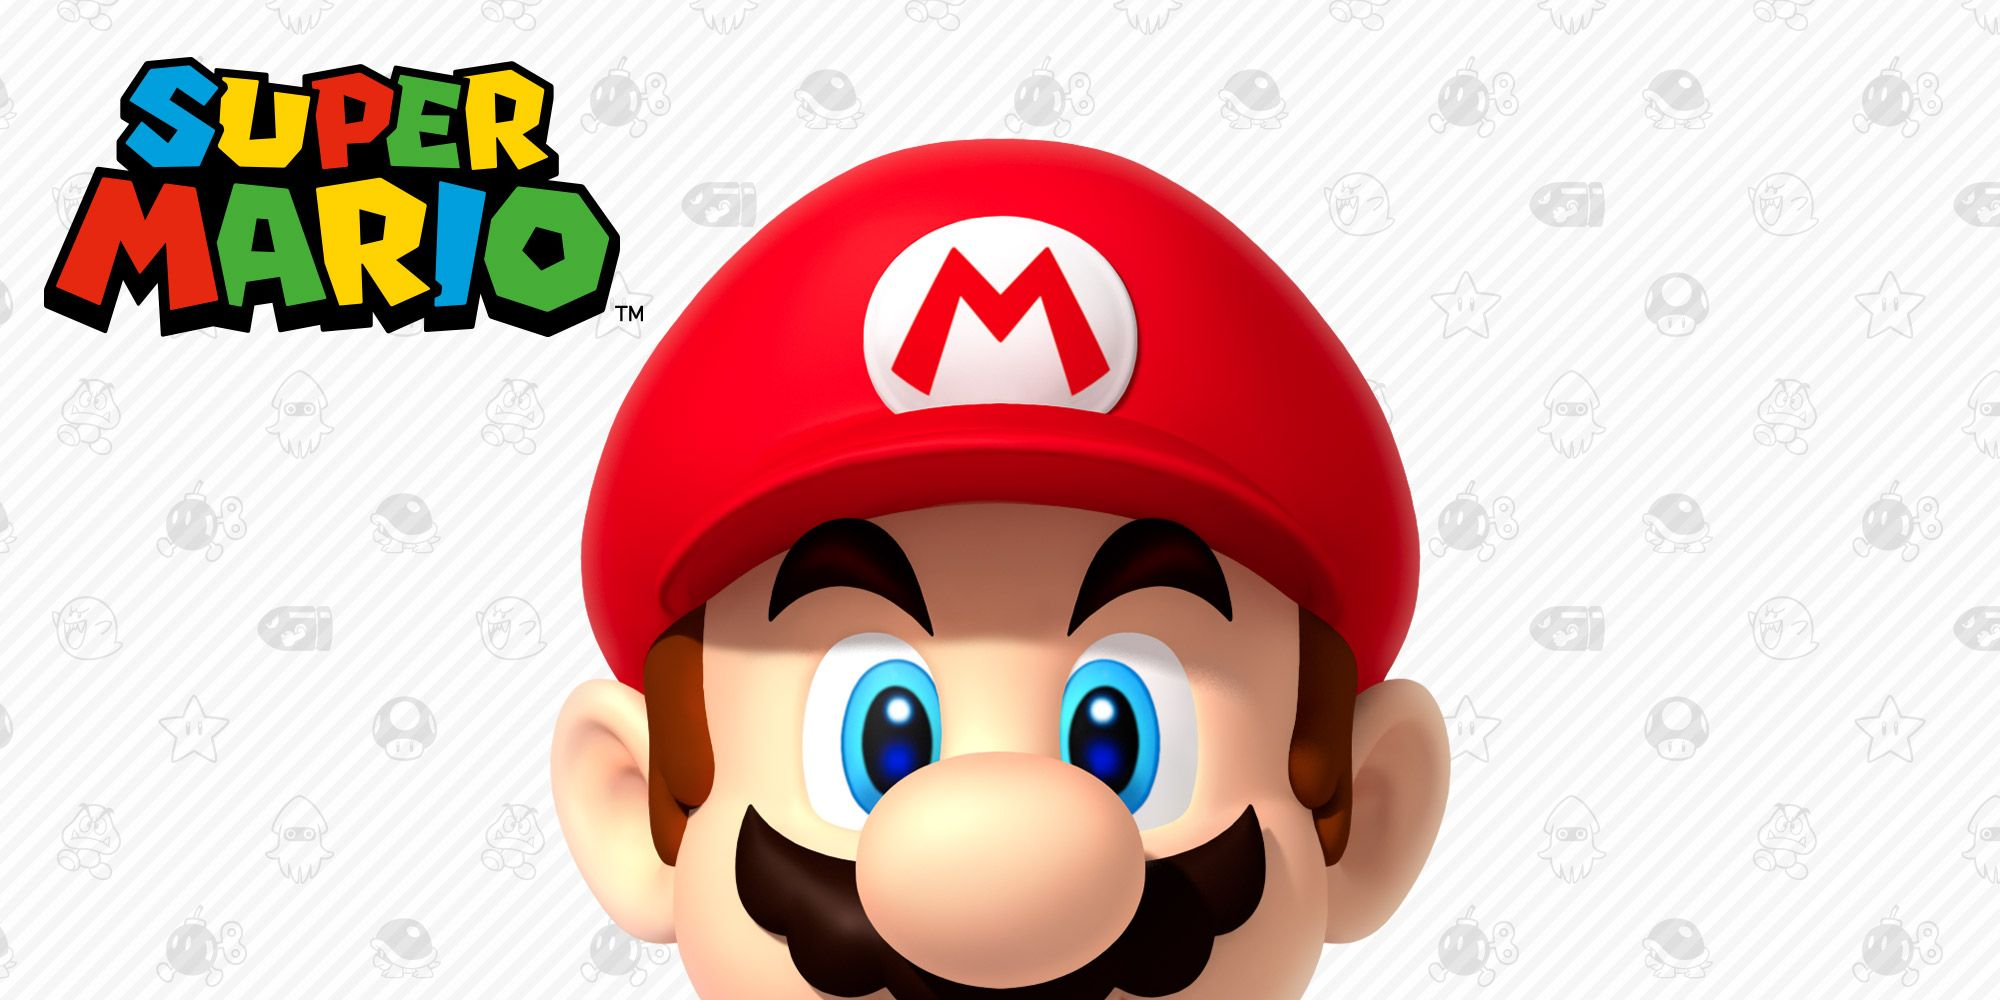 Super Mario is no longer a Plumber and it's official